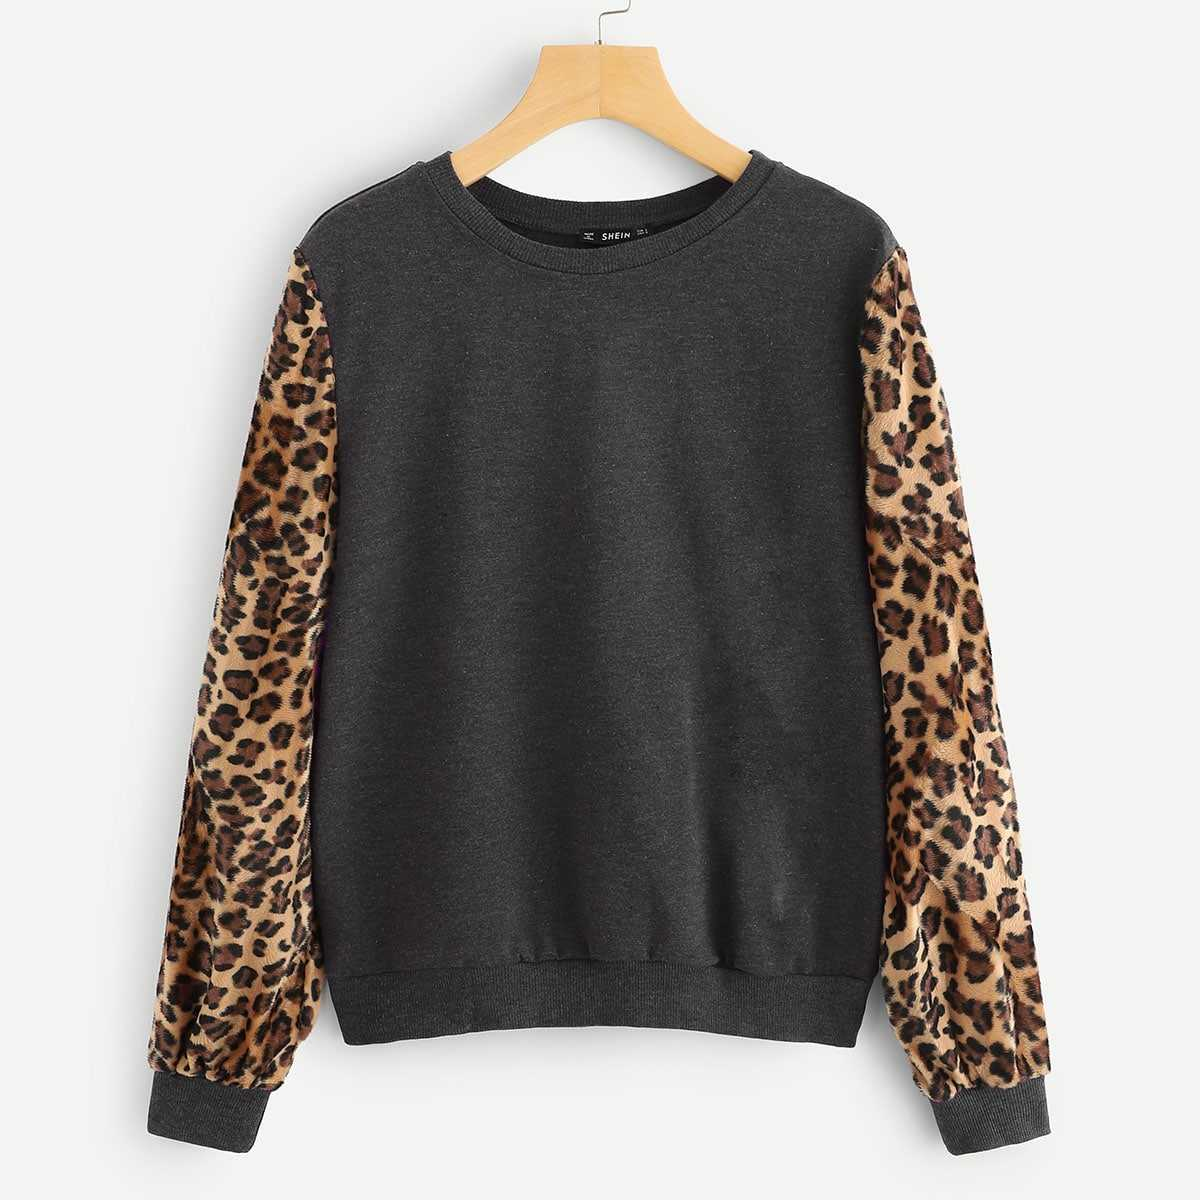 Leopard Sleeve Pullover in Grey by ROMWE on GOOFASH